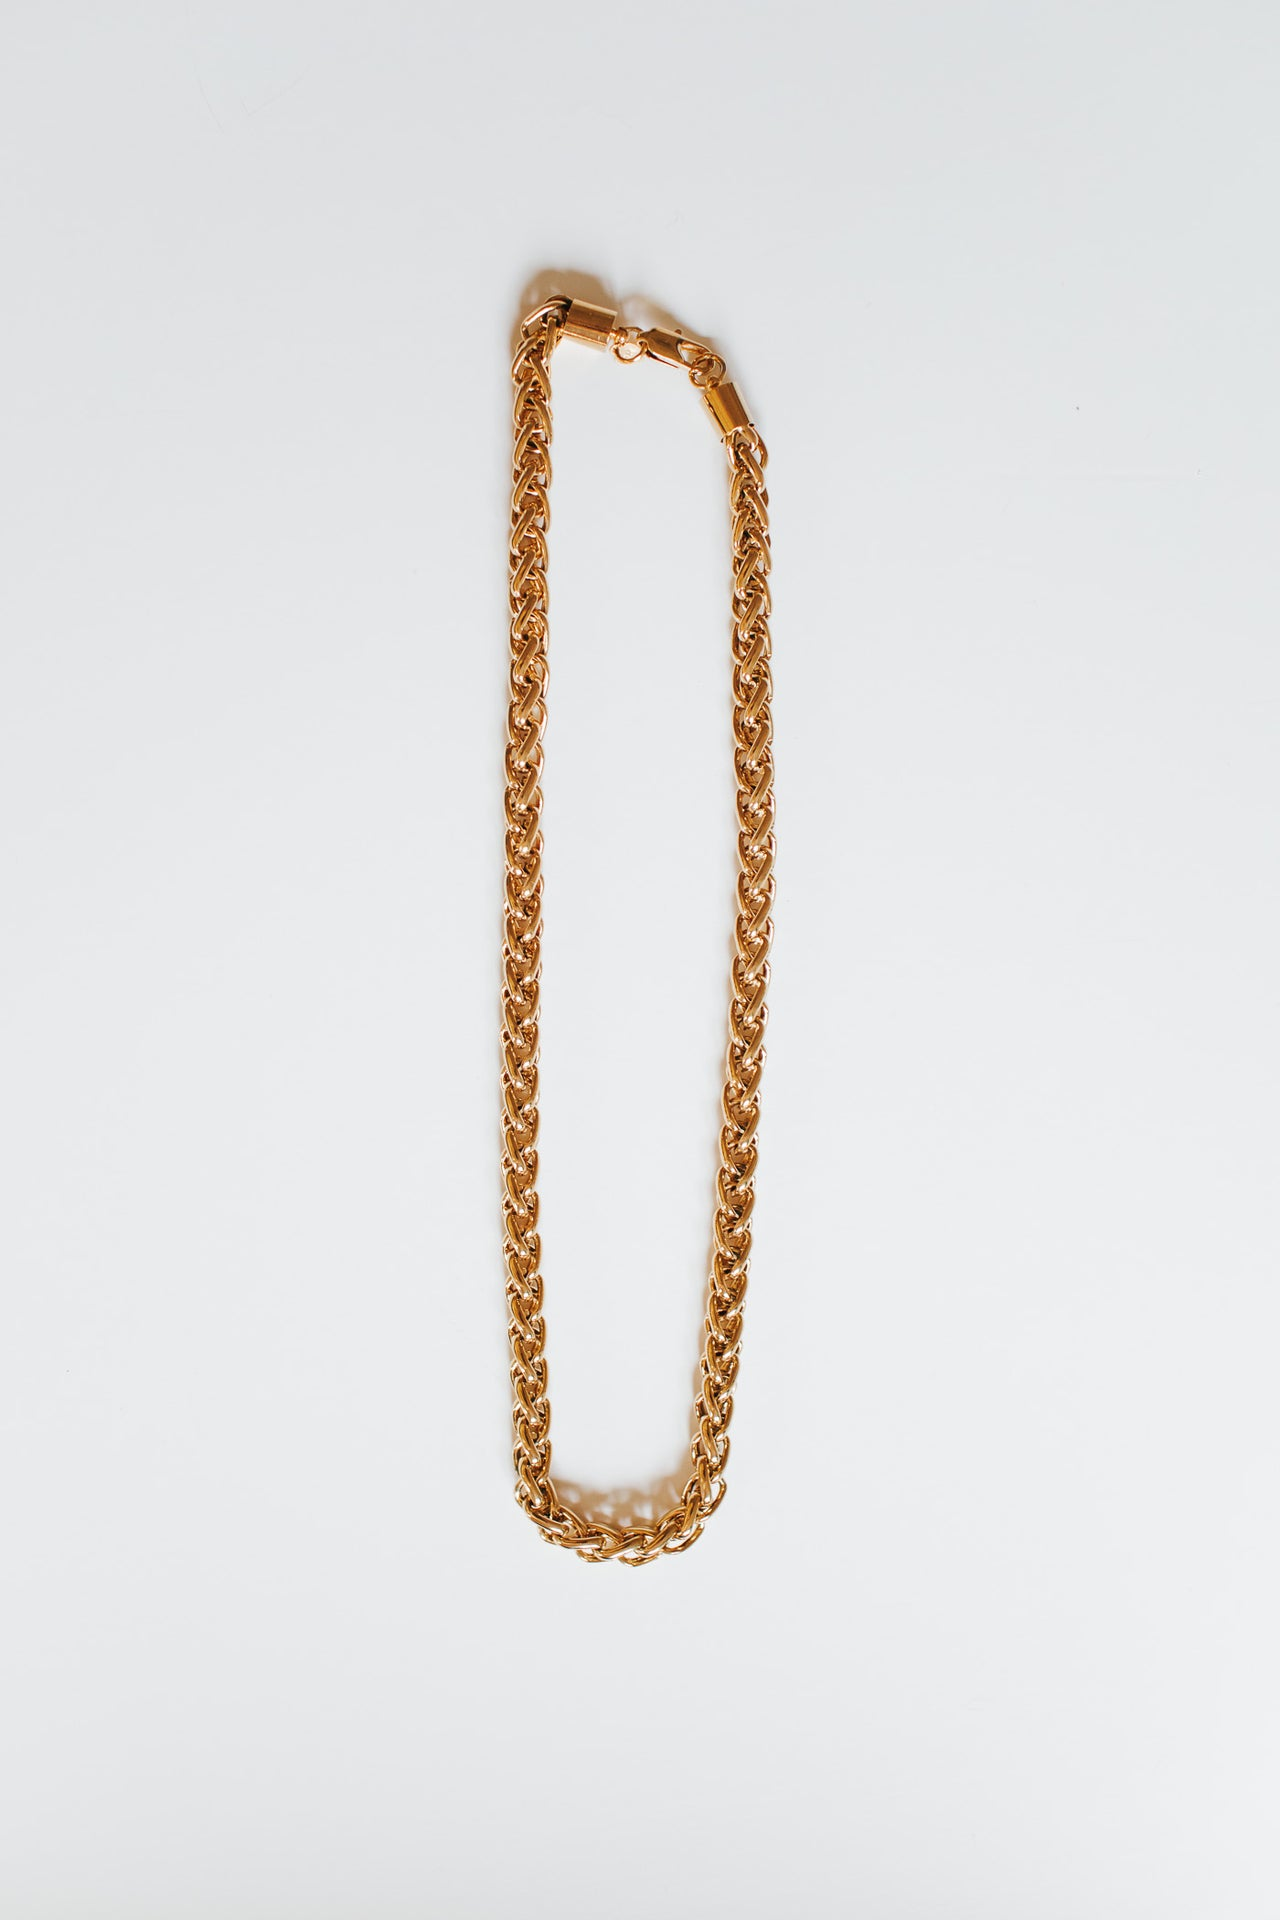 CORA GOLD NECKLACE - Lurelly